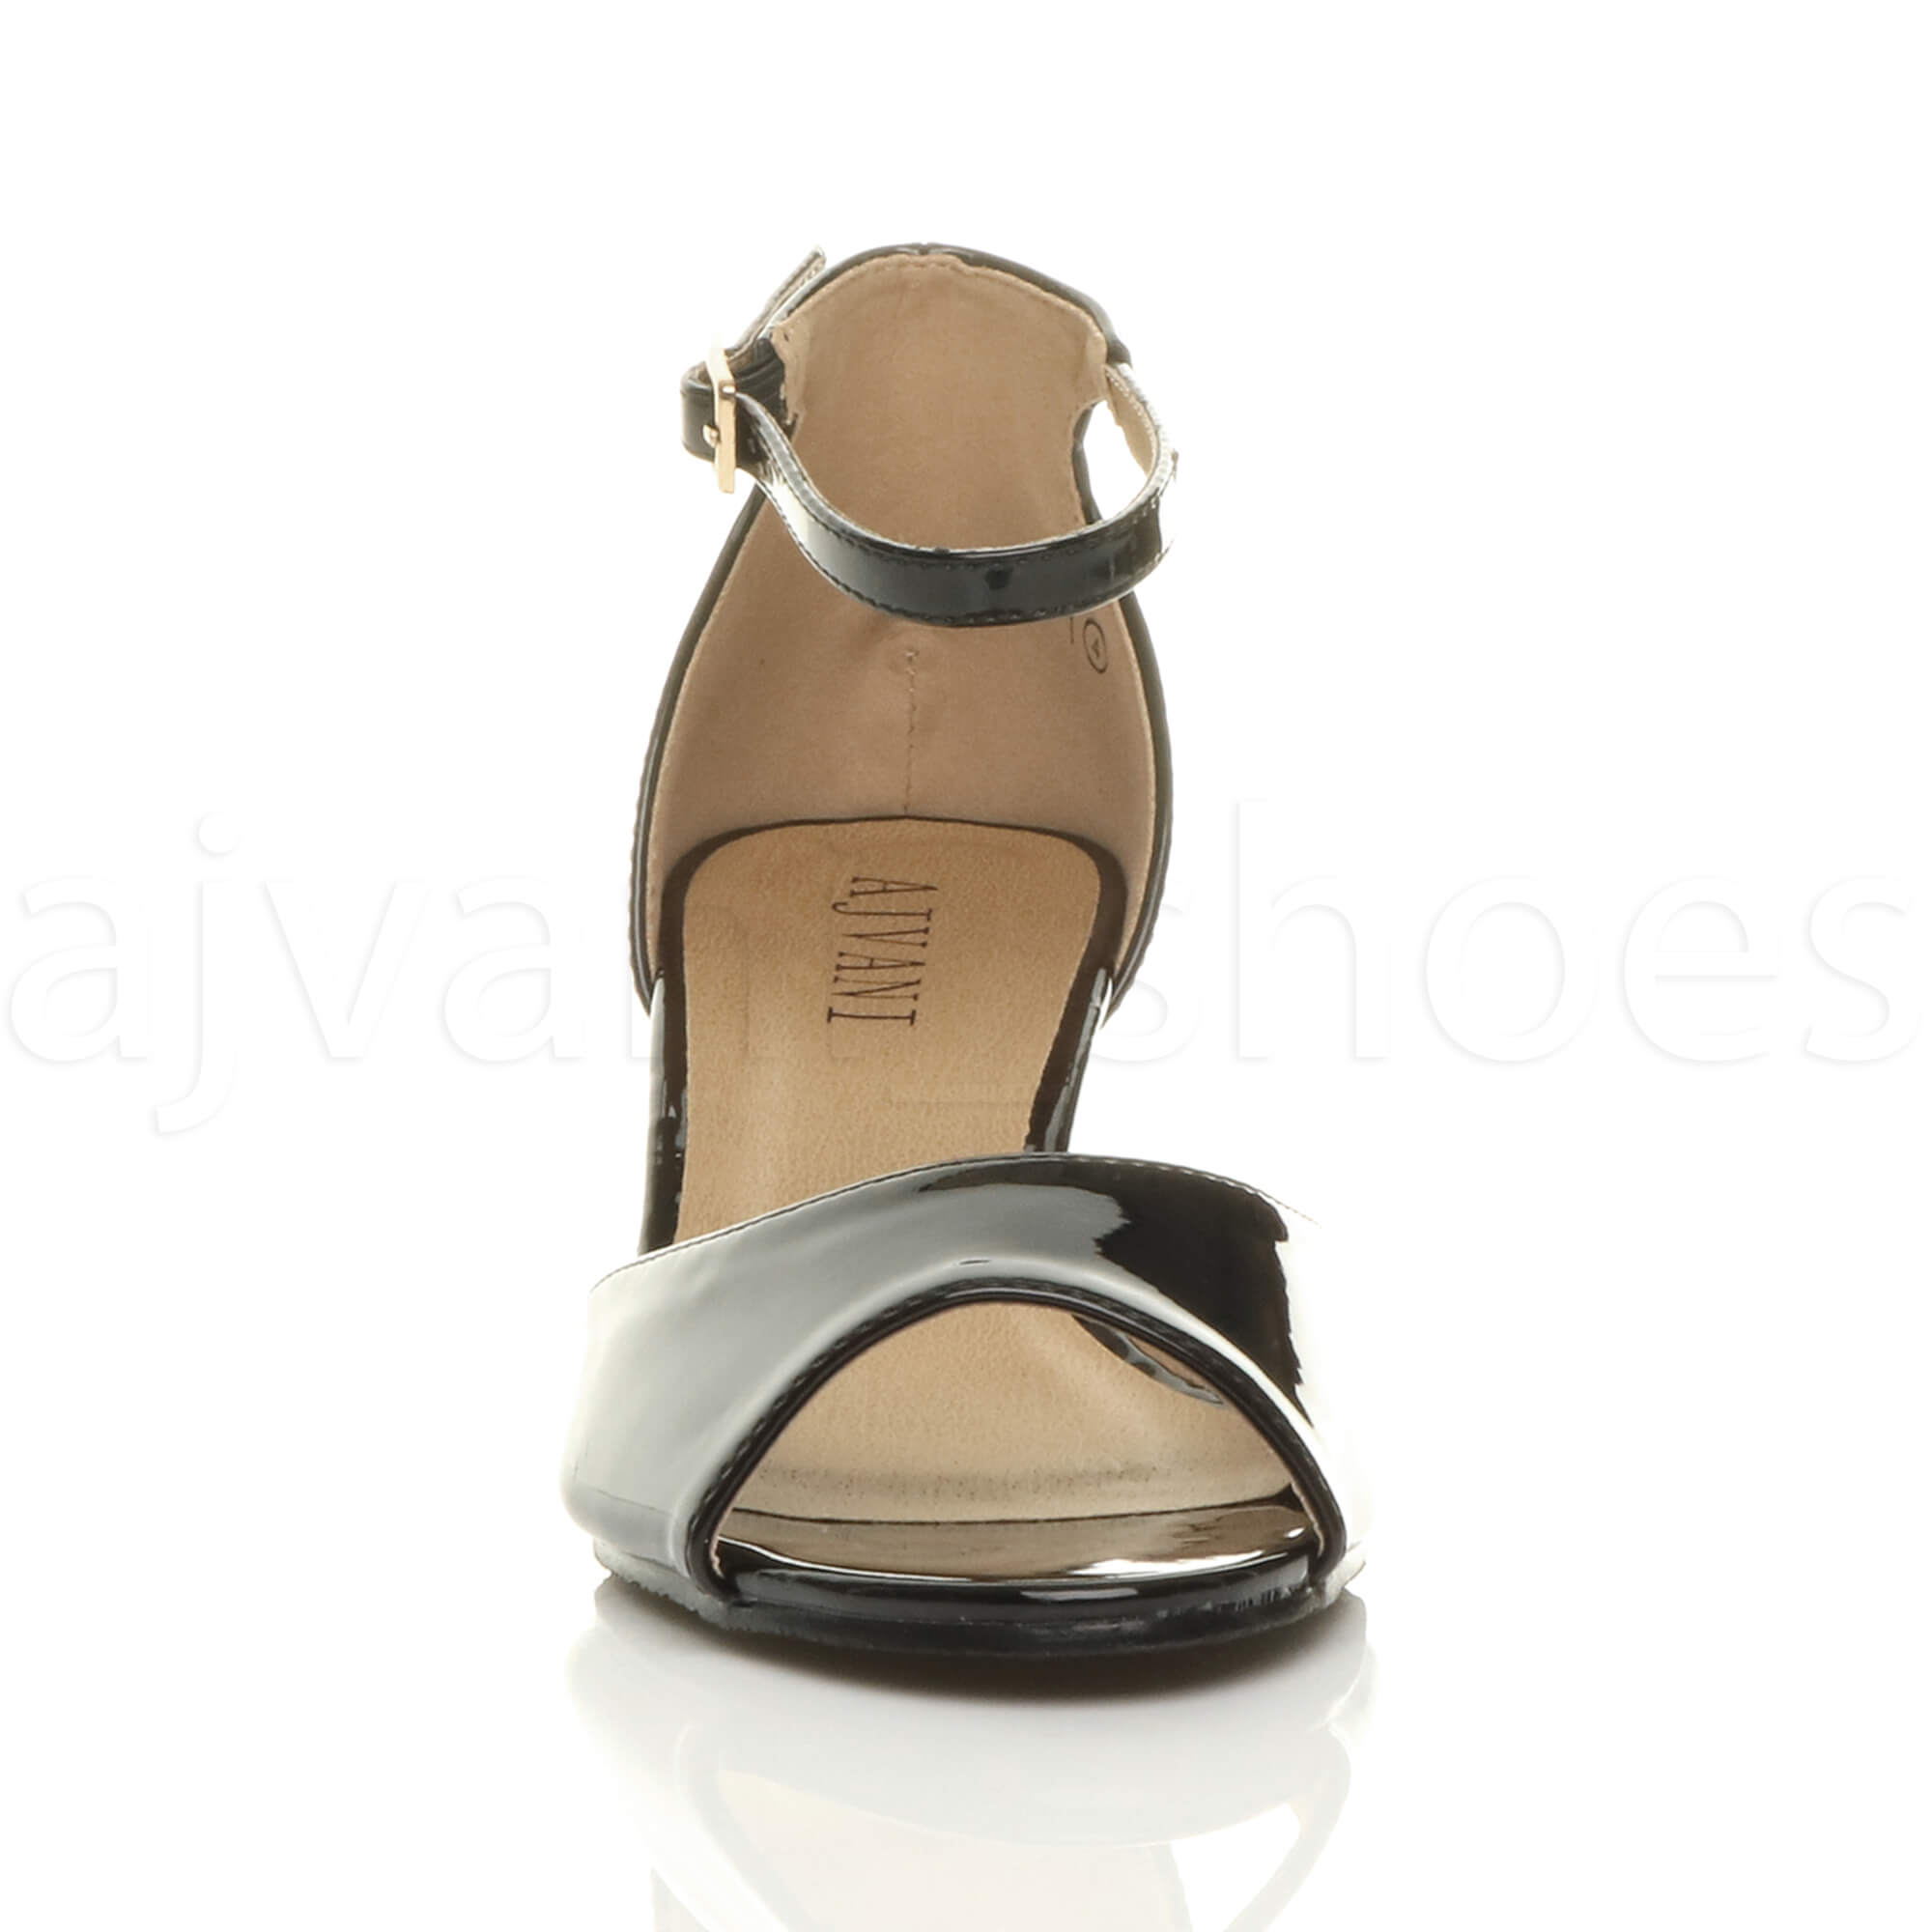 WOMENS-LADIES-LOW-MID-WEDGE-HEEL-ANKLE-STRAP-SMART-CASUAL-EVENING-SANDALS-SIZE thumbnail 15